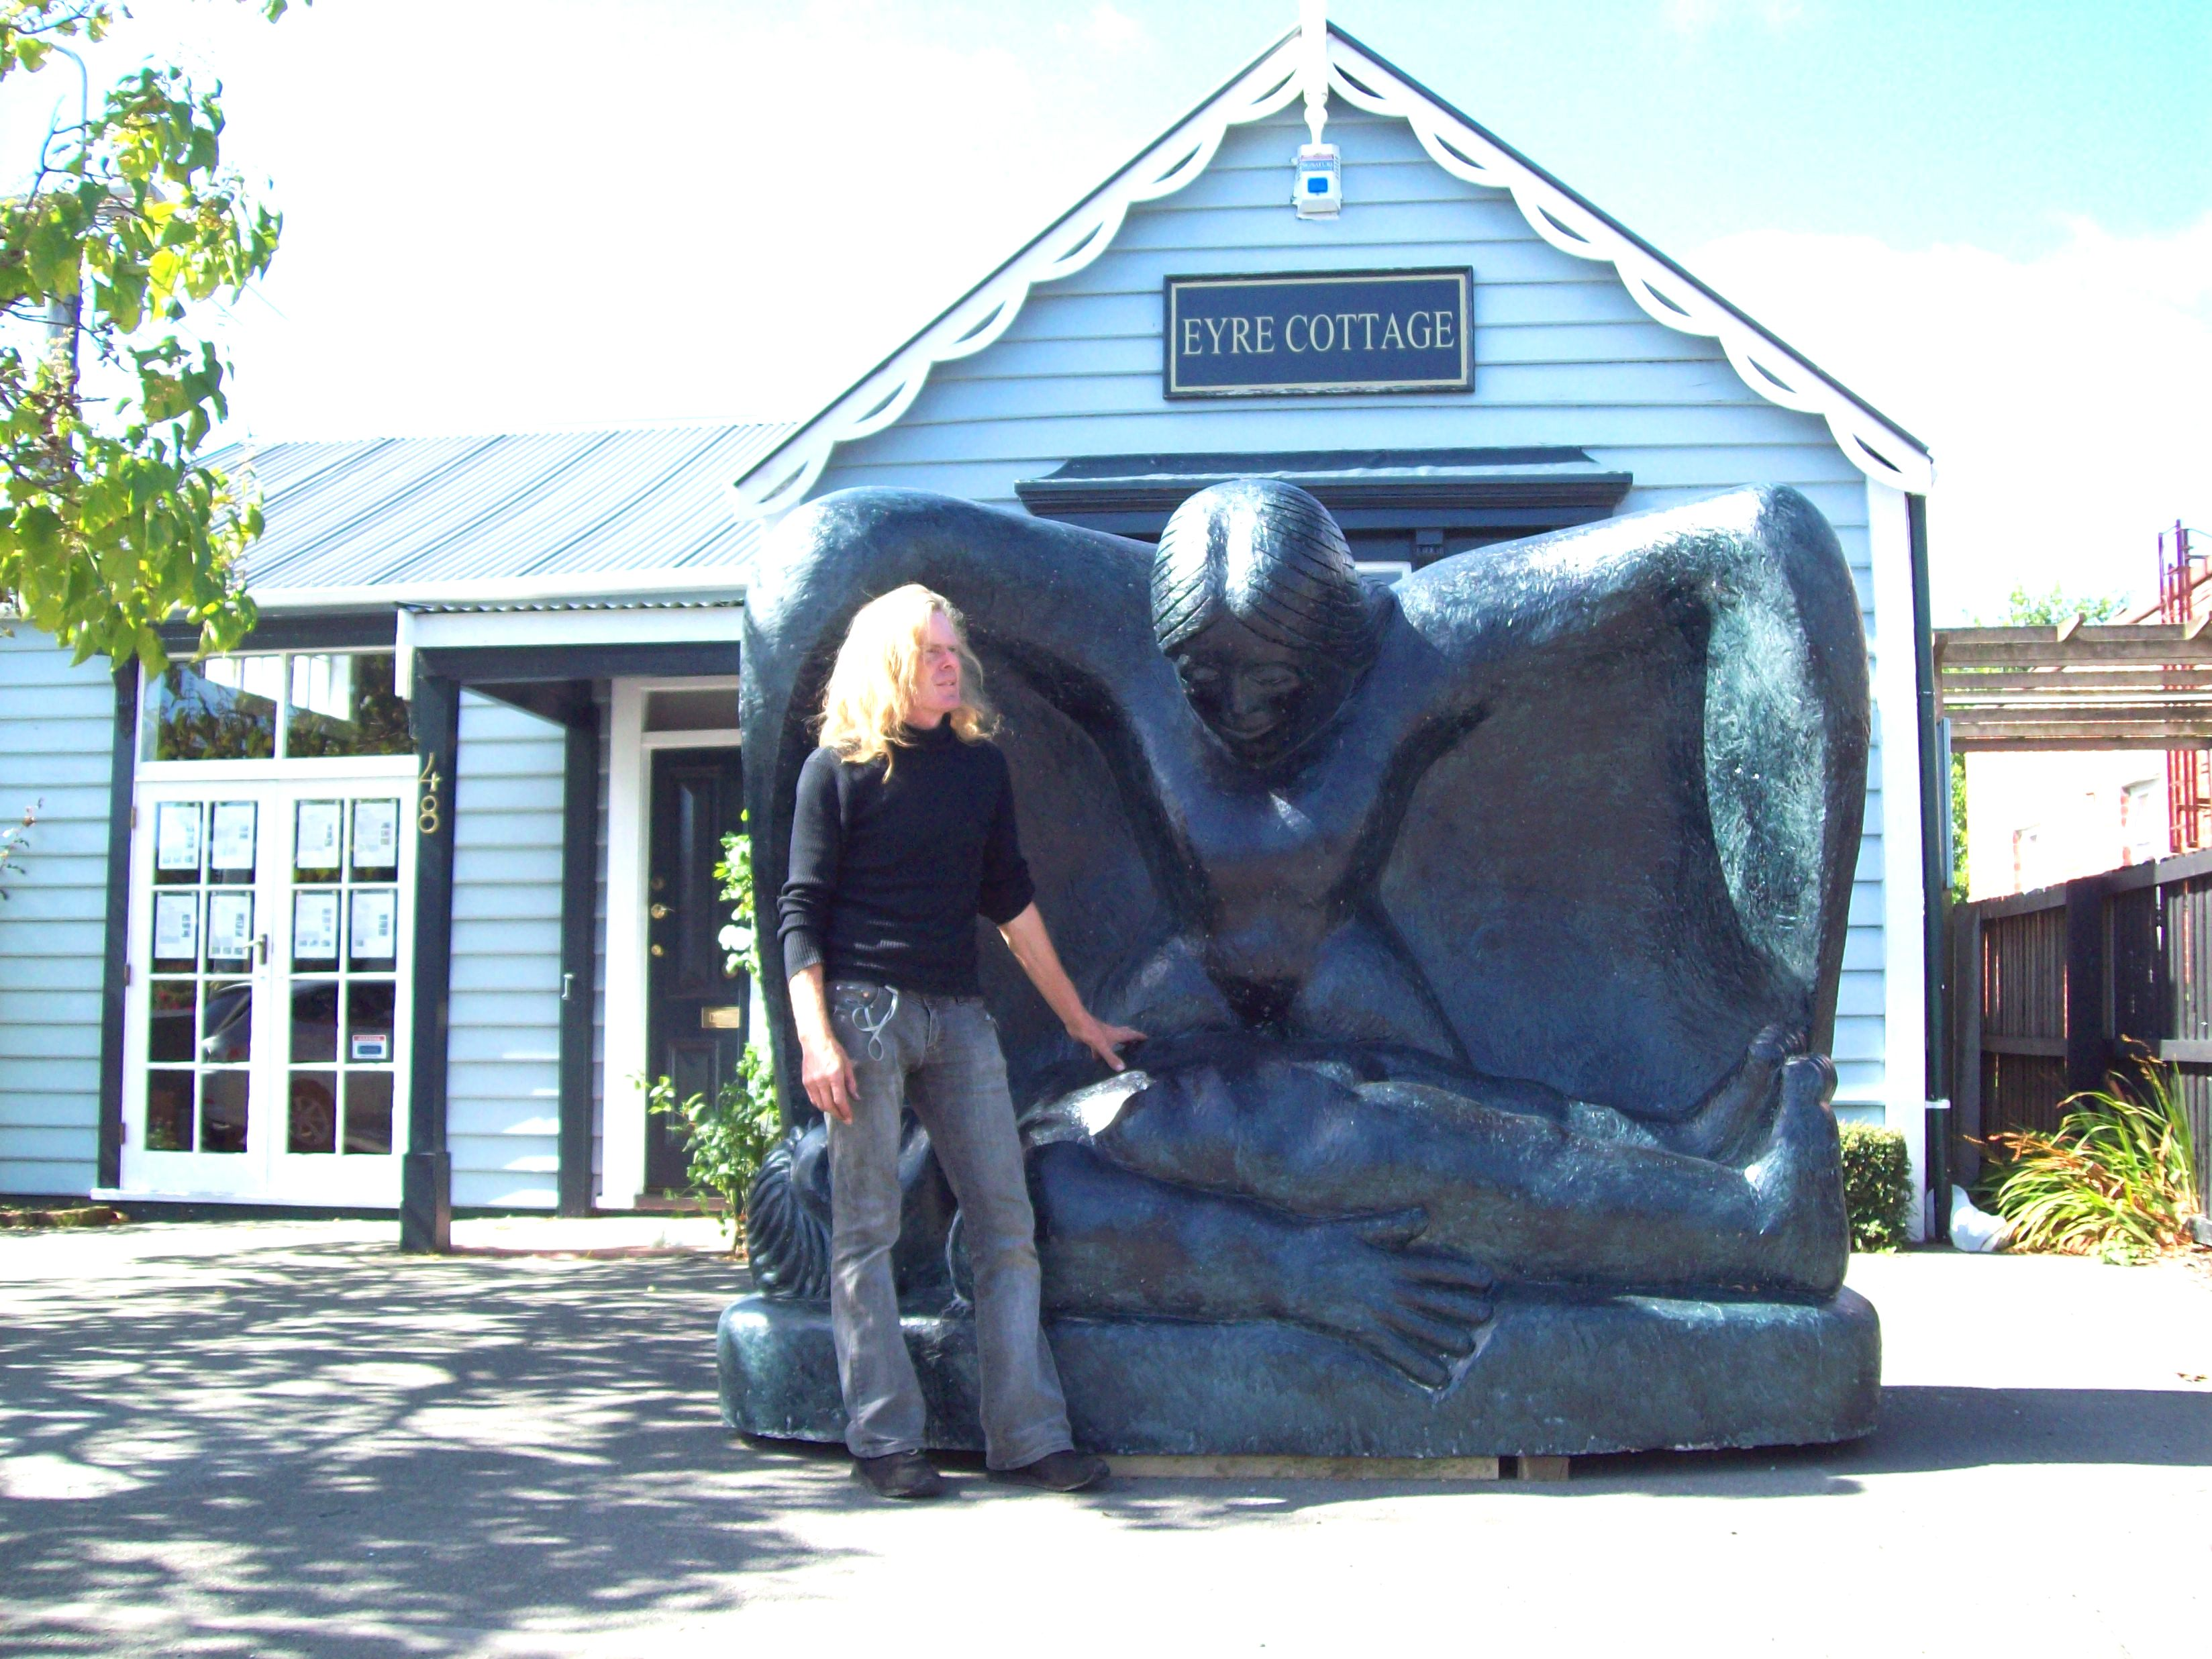 Castrating woman - eyre cottage in papan photo